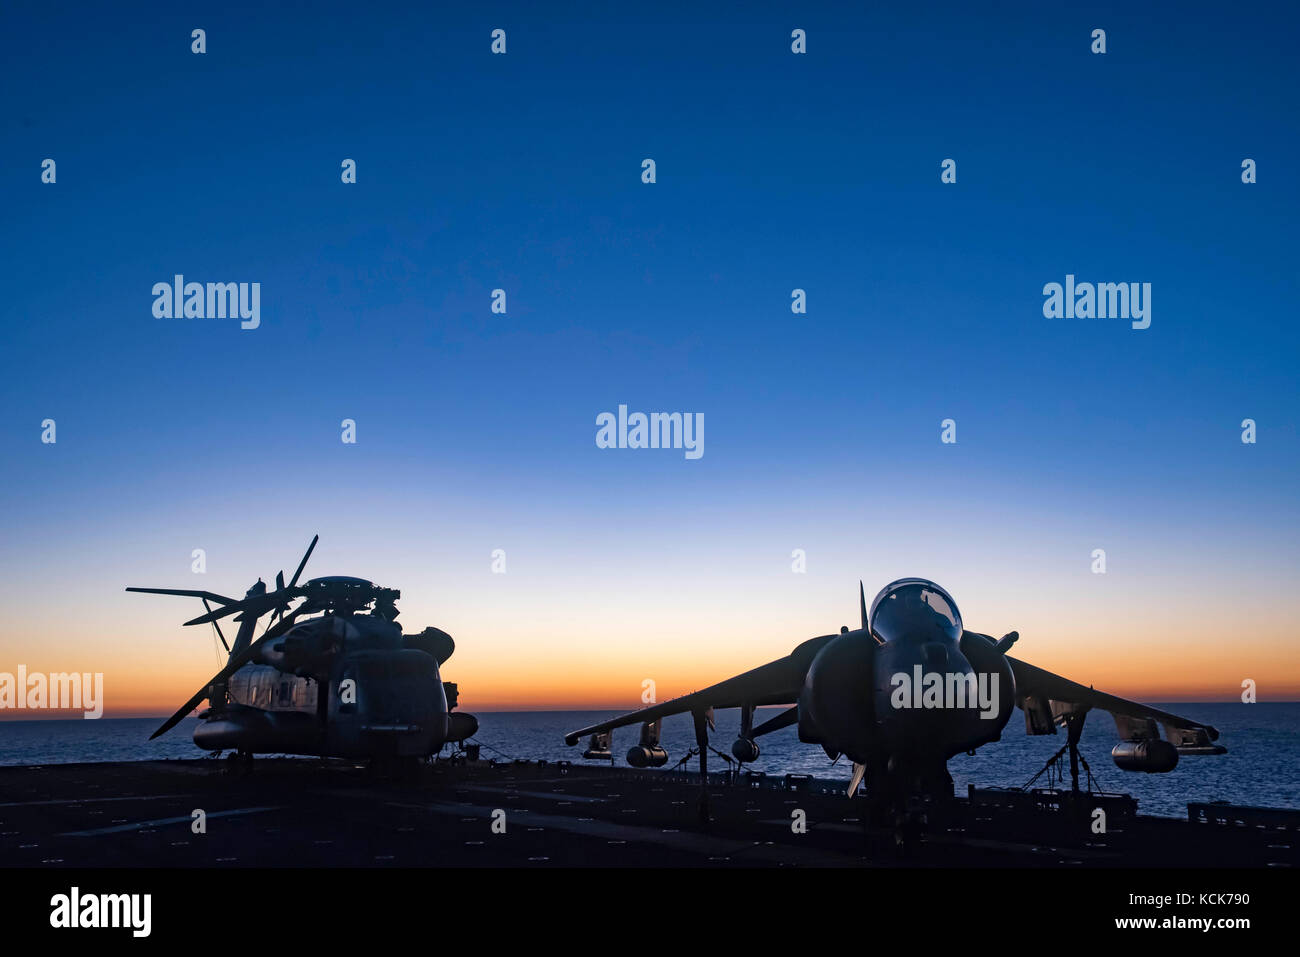 A U.S. Marine Corps CH-53E Super Stallion helicopter (left) and an AV-8B Harrier II ground-attack aircraft sit on - Stock Image